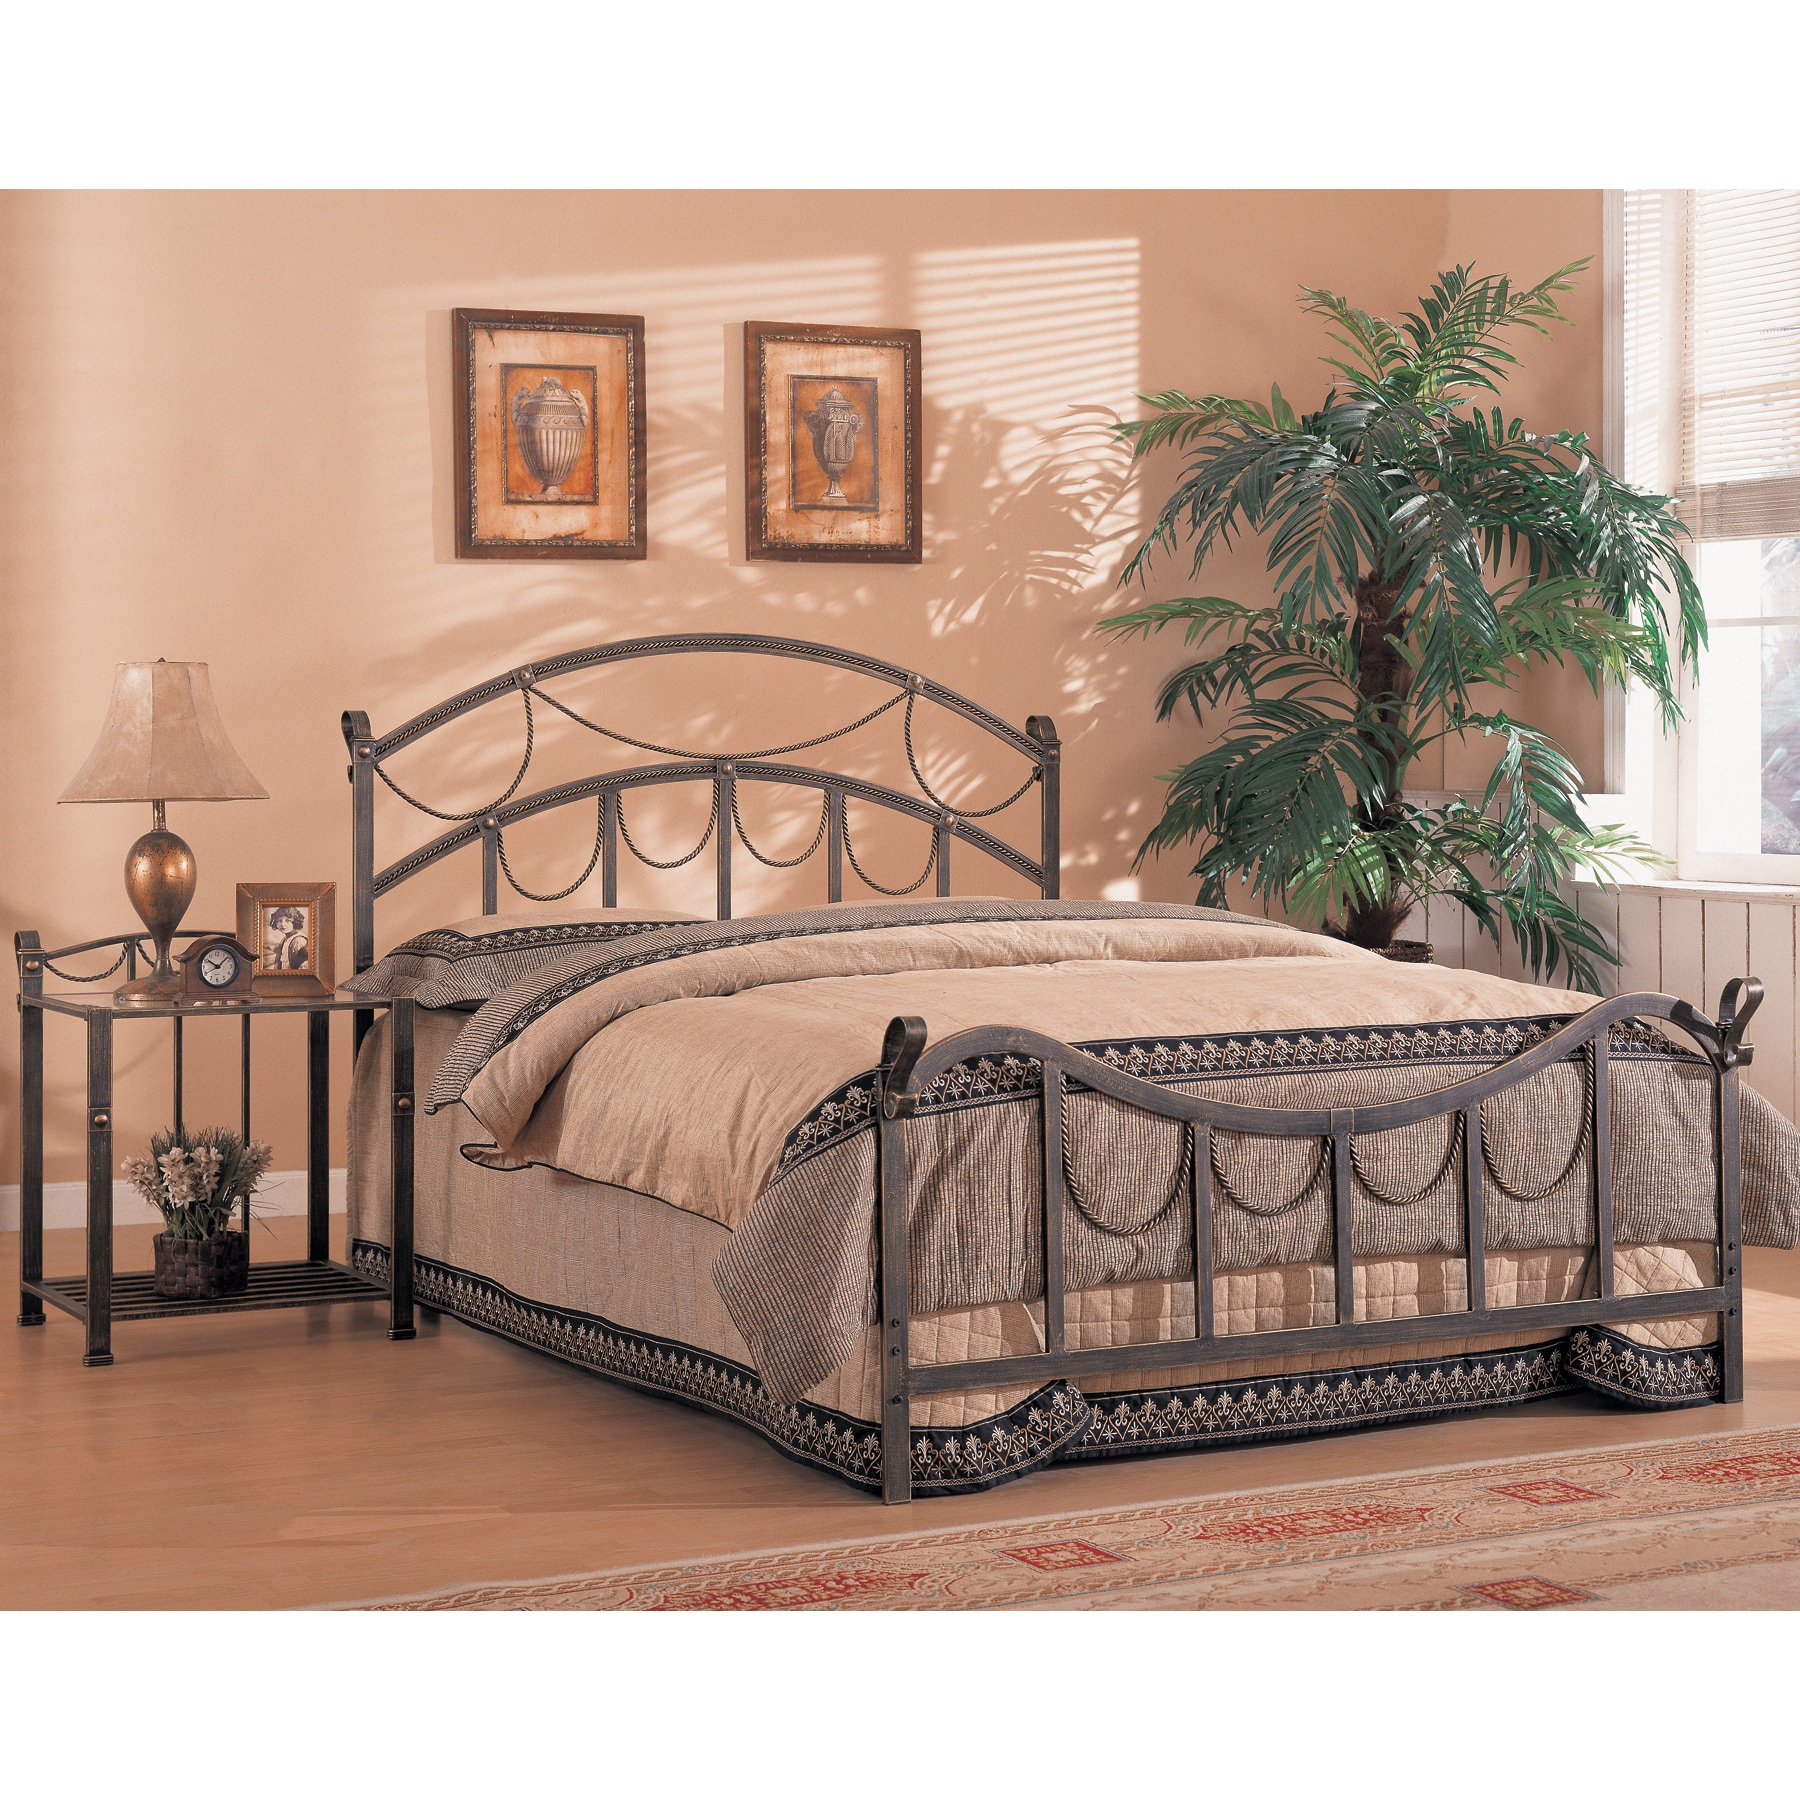 Picture of: Coaster Company Antique Brass Queen Bed Overstock 12180187